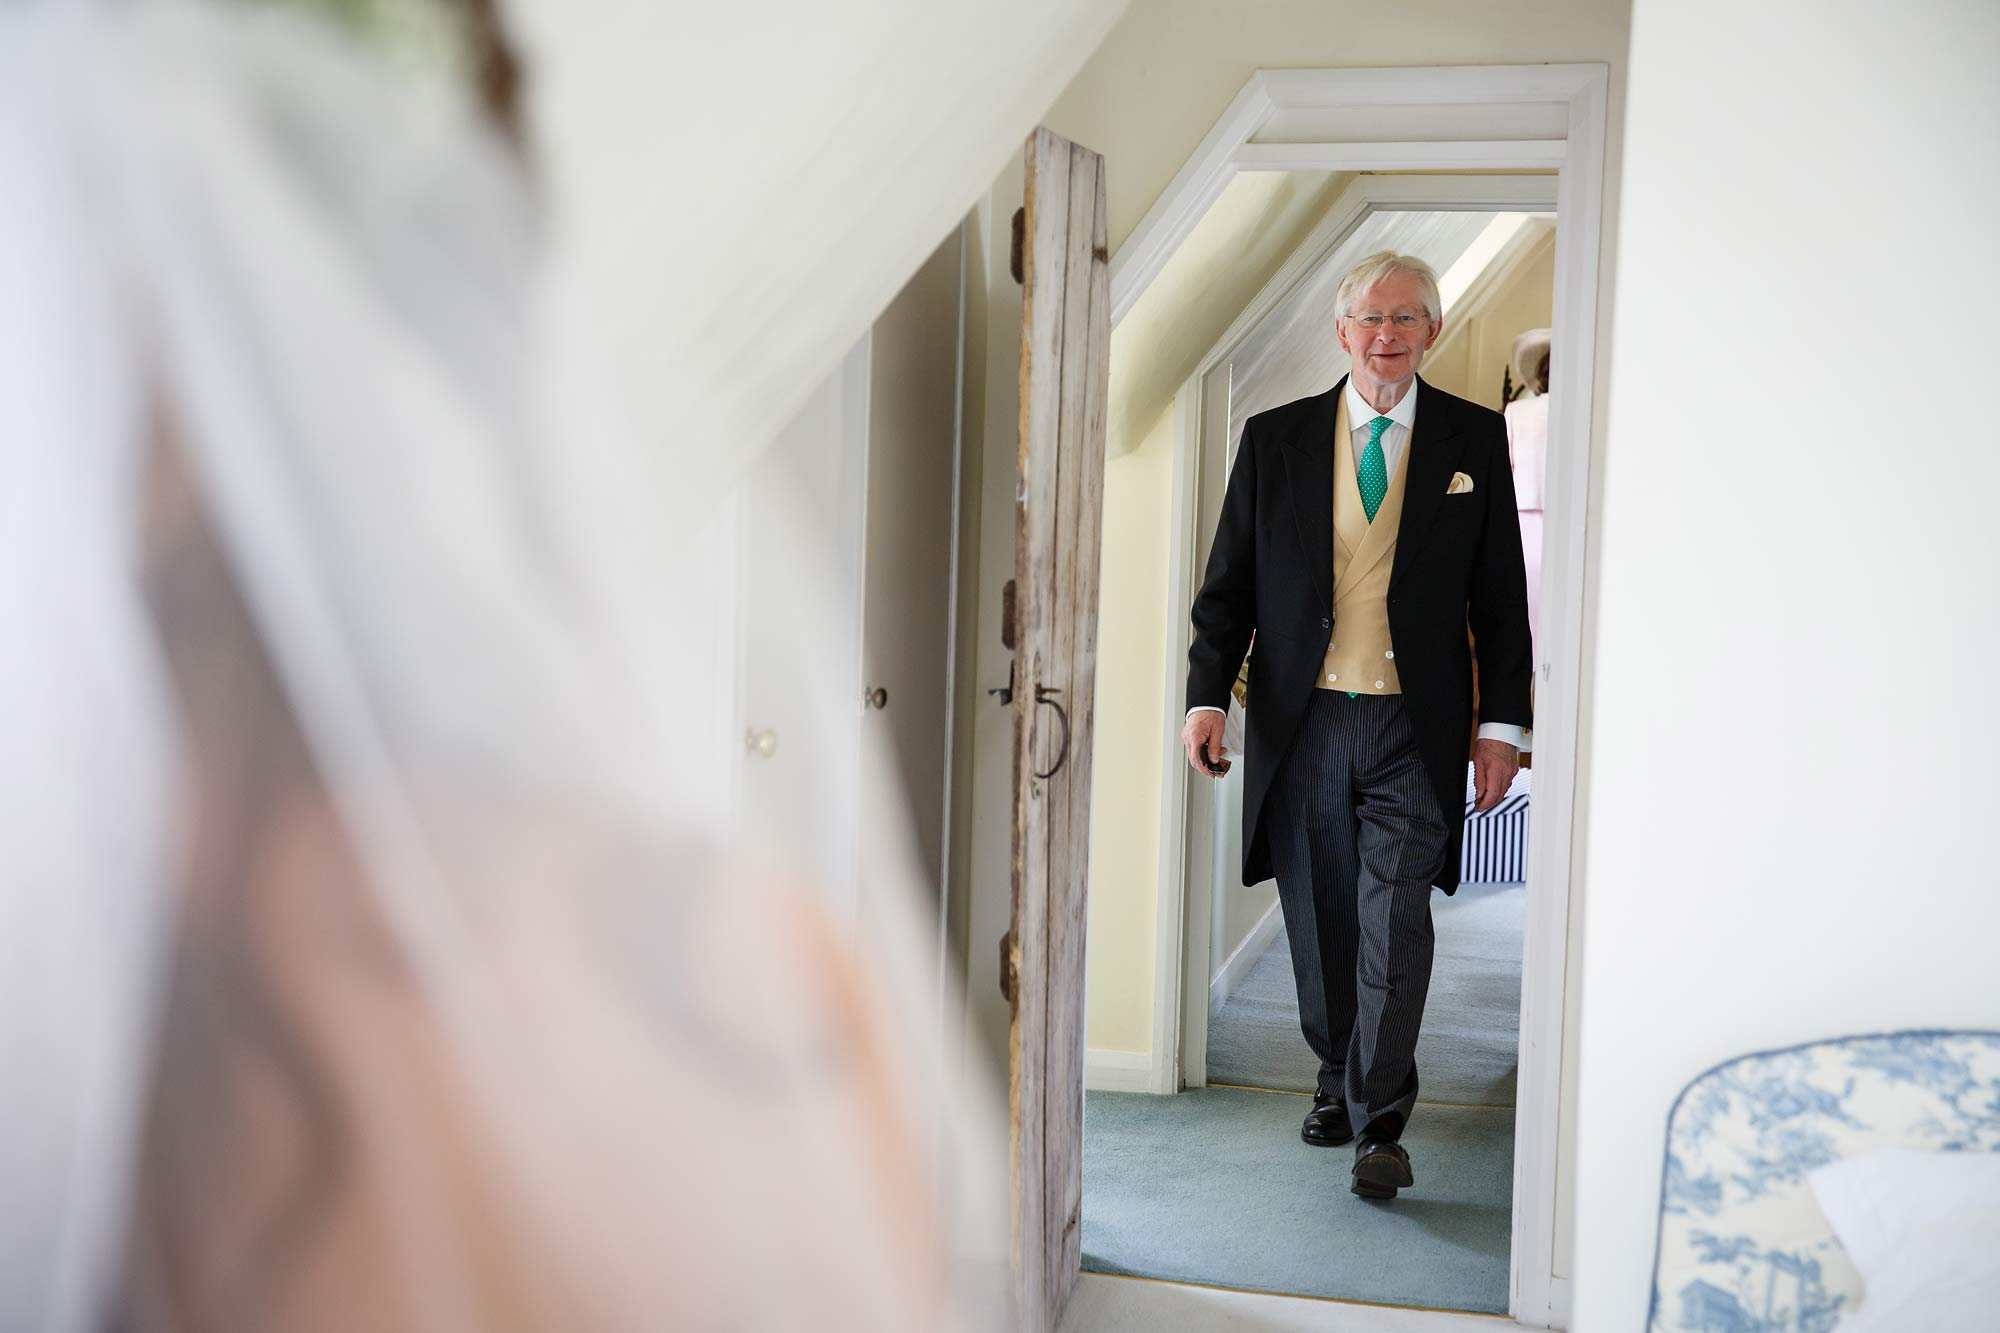 father of the bride sees his daughter for the first time in wedding dress.